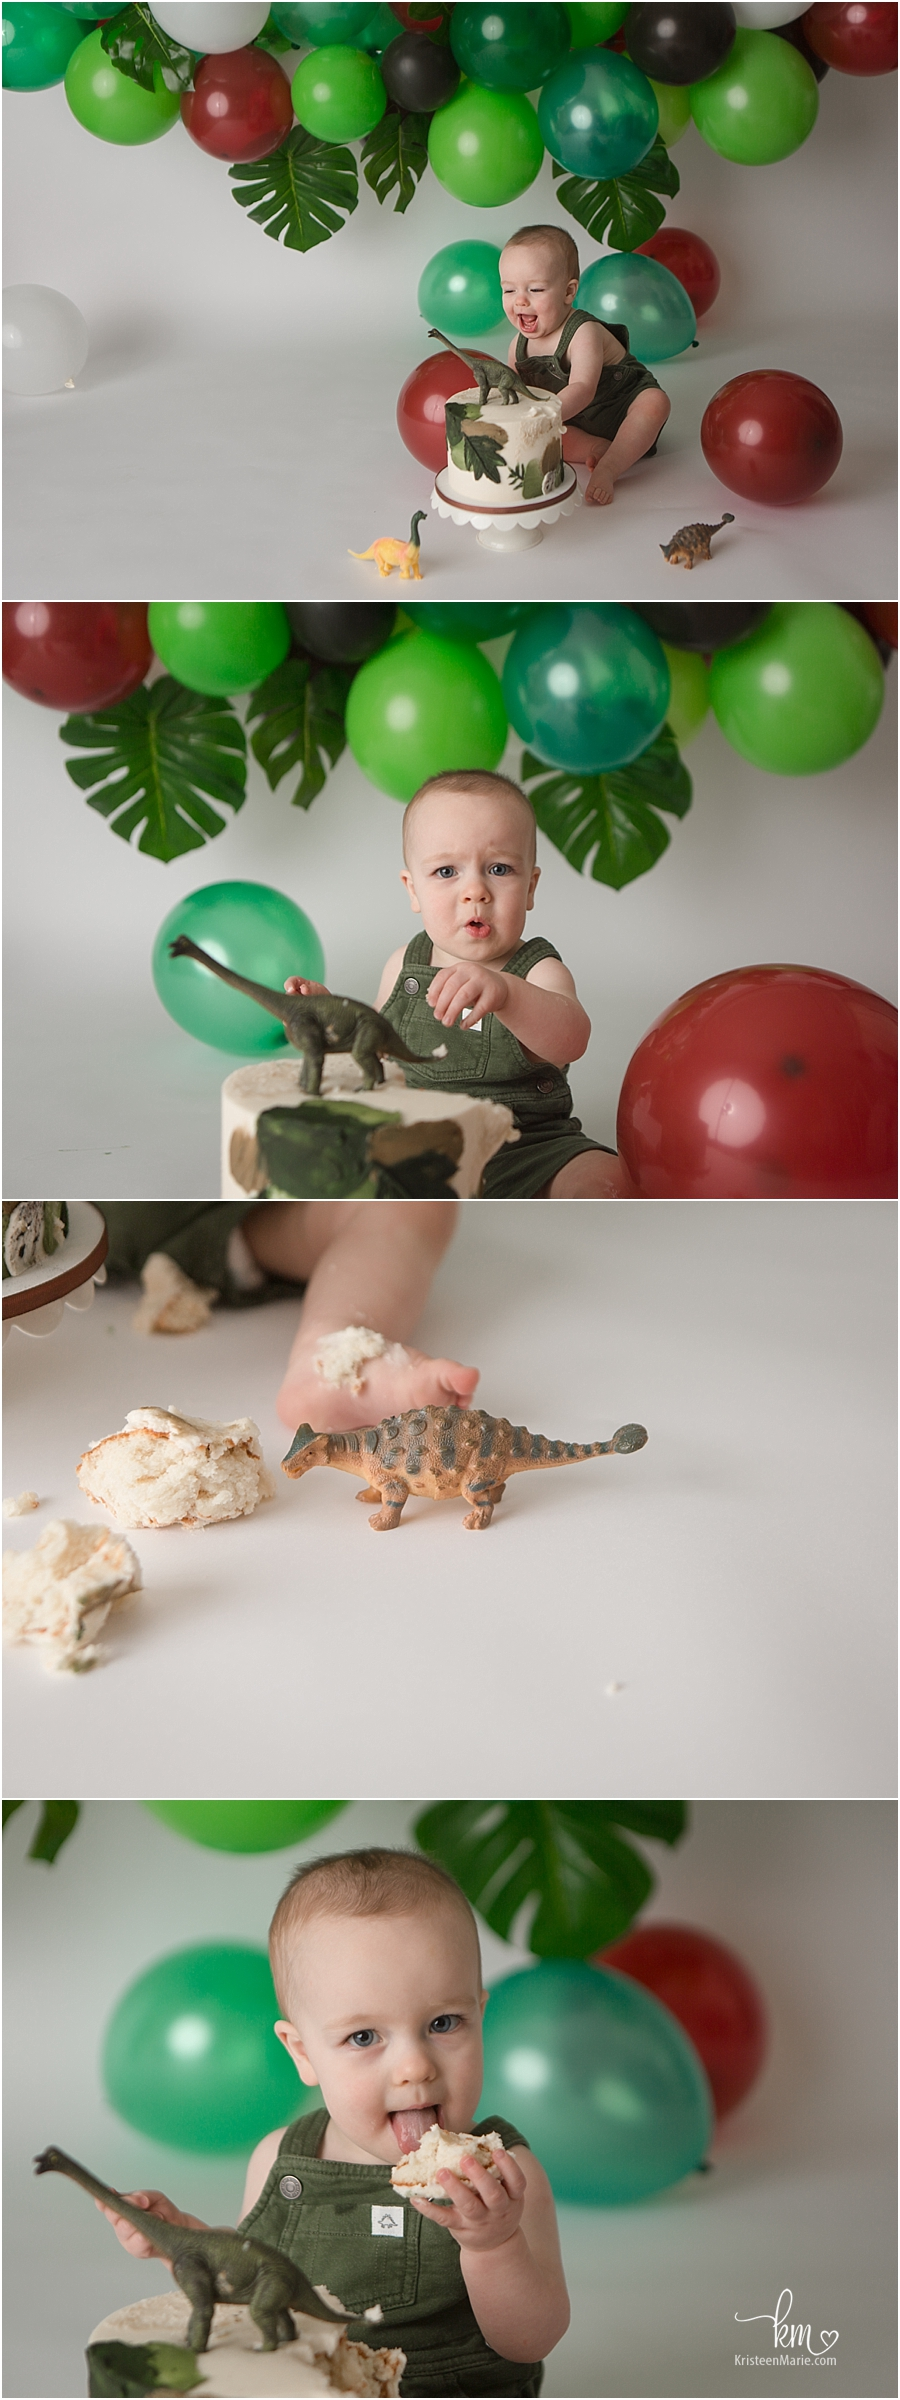 dino first birthday cake smash photography